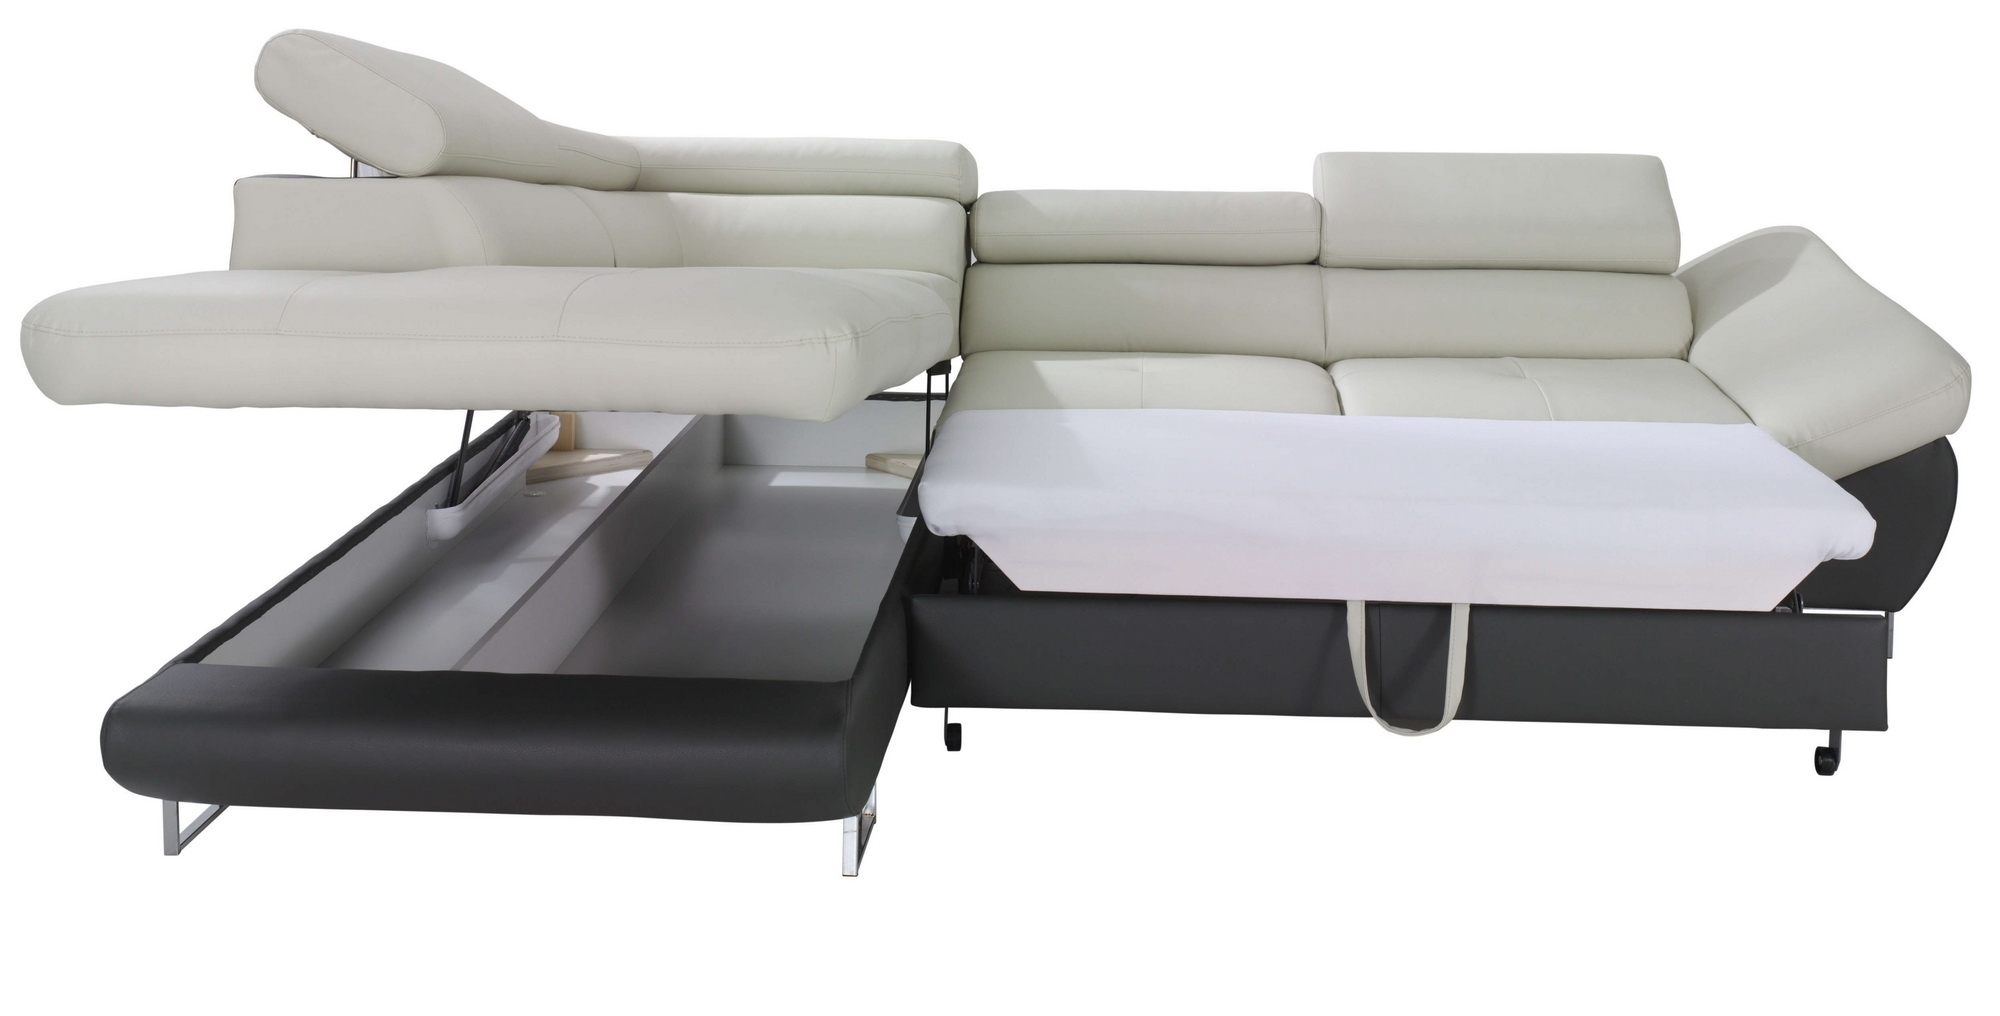 Fabio Sectional Sofa Sleeper With Storage, Creative Furniture Within Sectional Sofas With Sleeper (View 2 of 10)